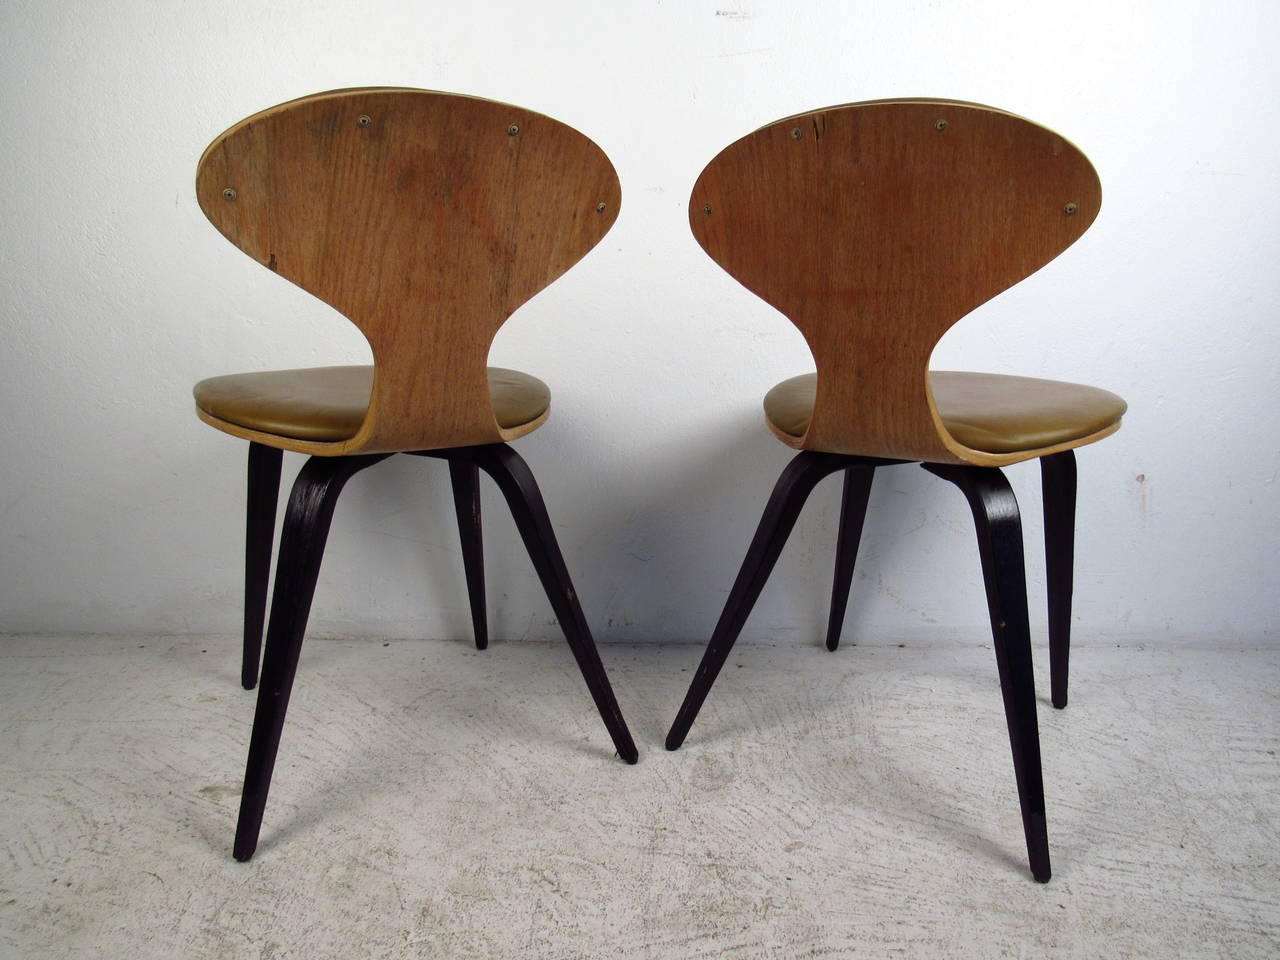 Pair of Mid-Century Modern Bentwood Chairs in the Style of Norman Cherner In Good Condition For Sale In Brooklyn, NY